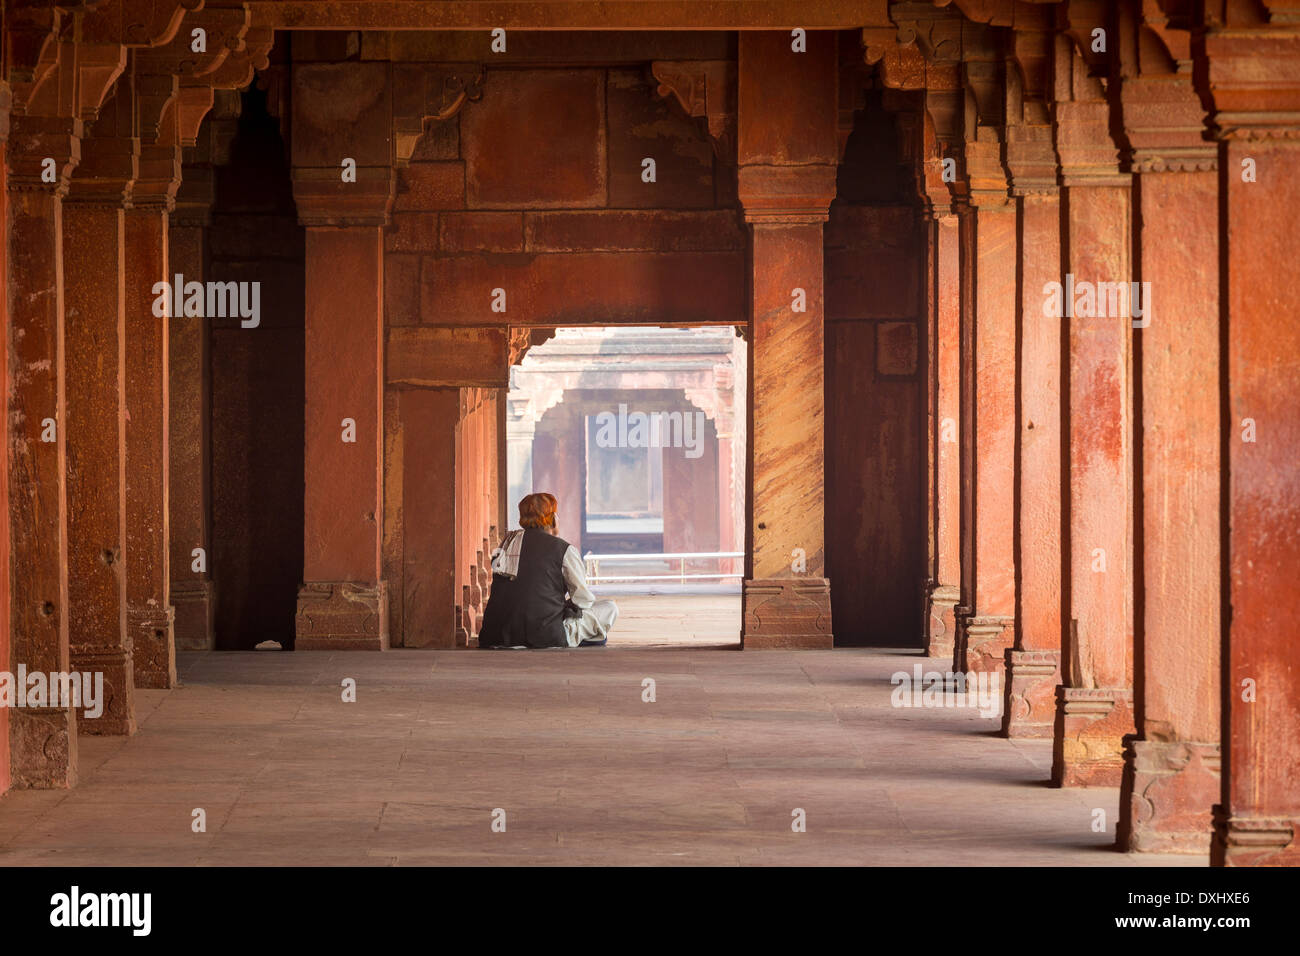 Fatehpur Sikri is a city and a municipal board in Agra district in the state of Uttar Pradesh, India - Stock Image